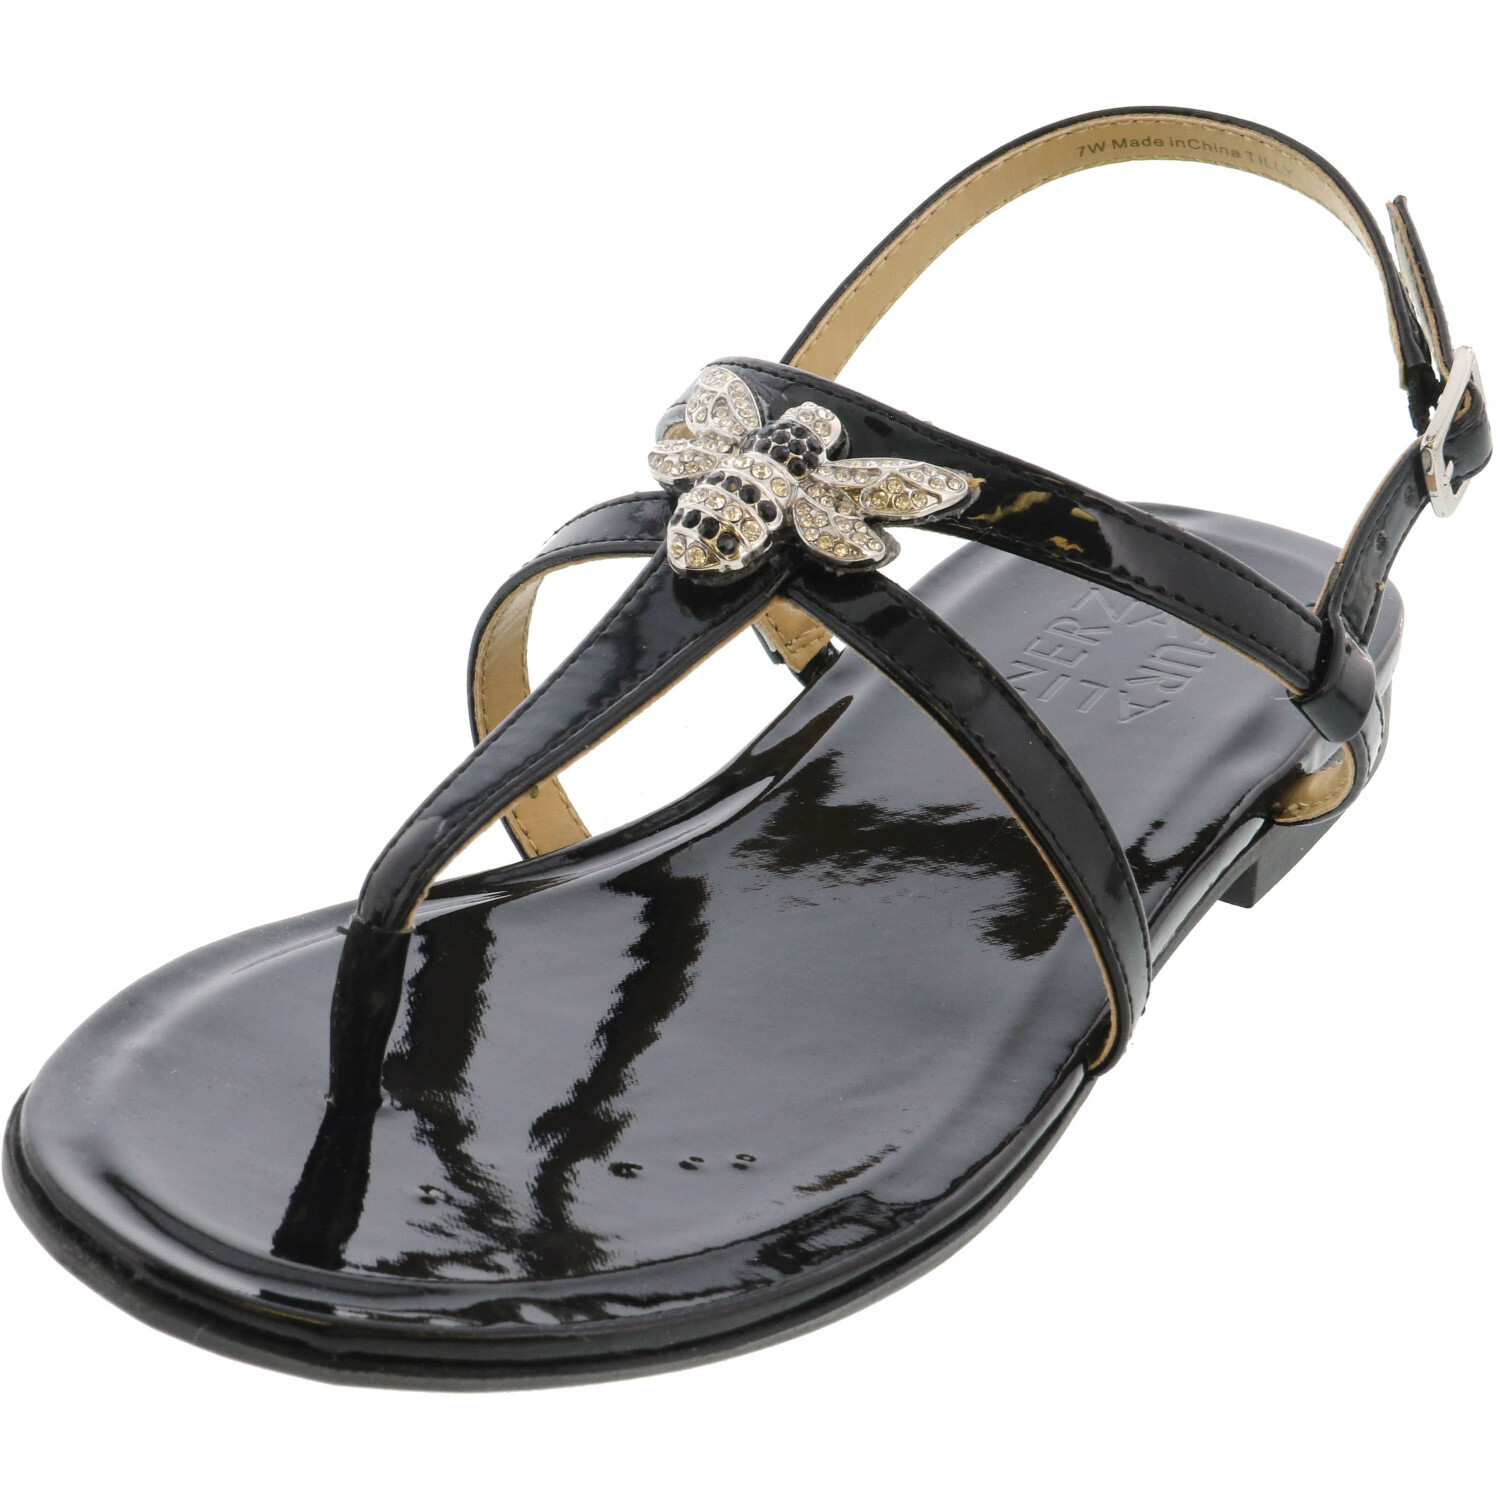 Naturalizer Women's Tilly Patent Black Ankle-High Sandal - 6.5W